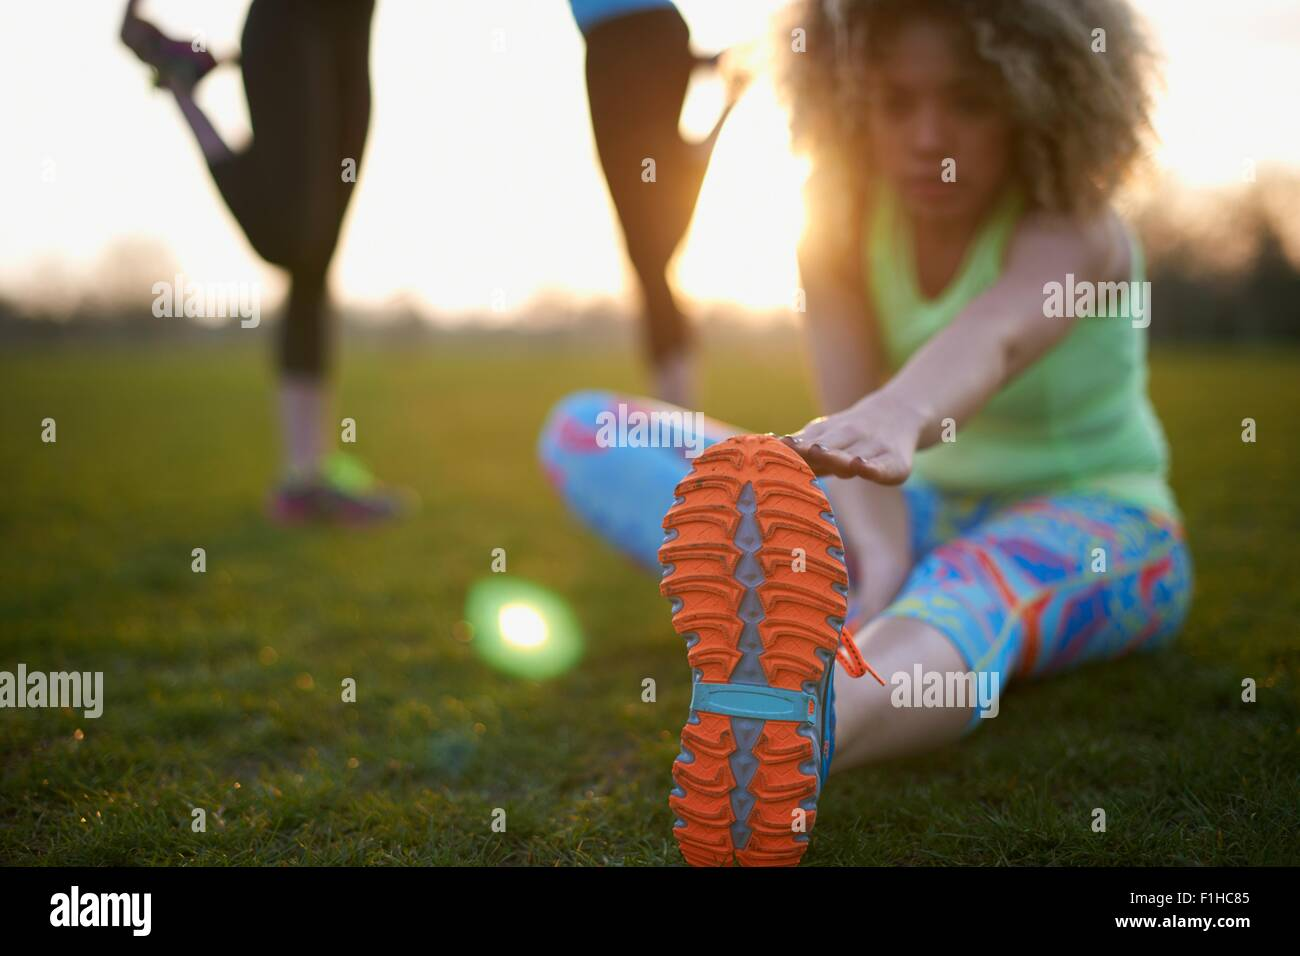 Portrait of woman stretching before exercise in park - Stock Image